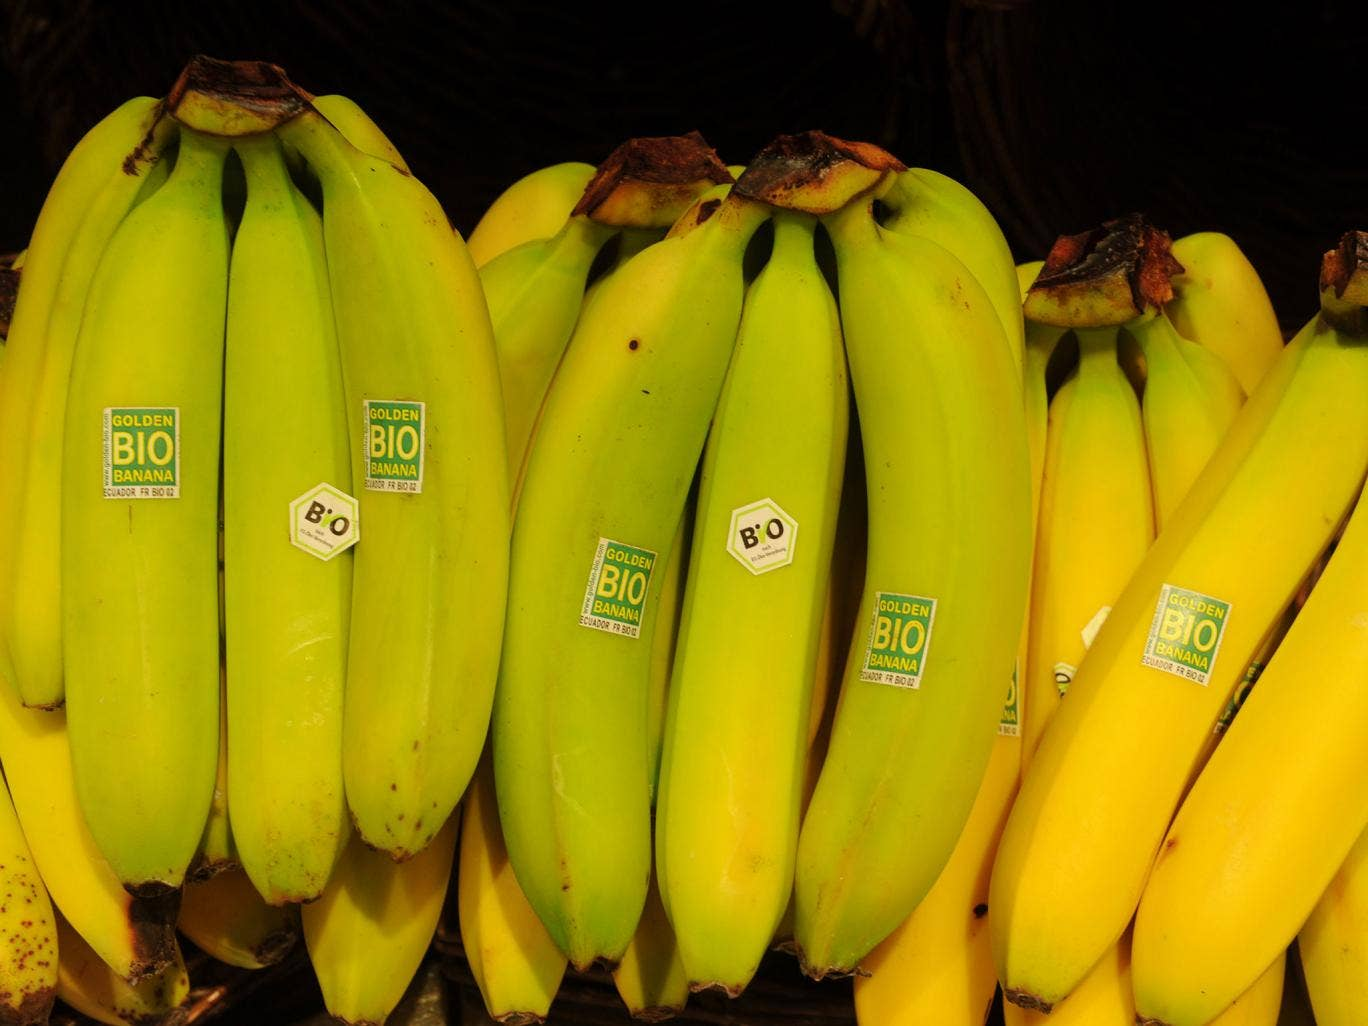 The specially bioengineered crop increases the level of beta-carotene in a particular type of cooking banana